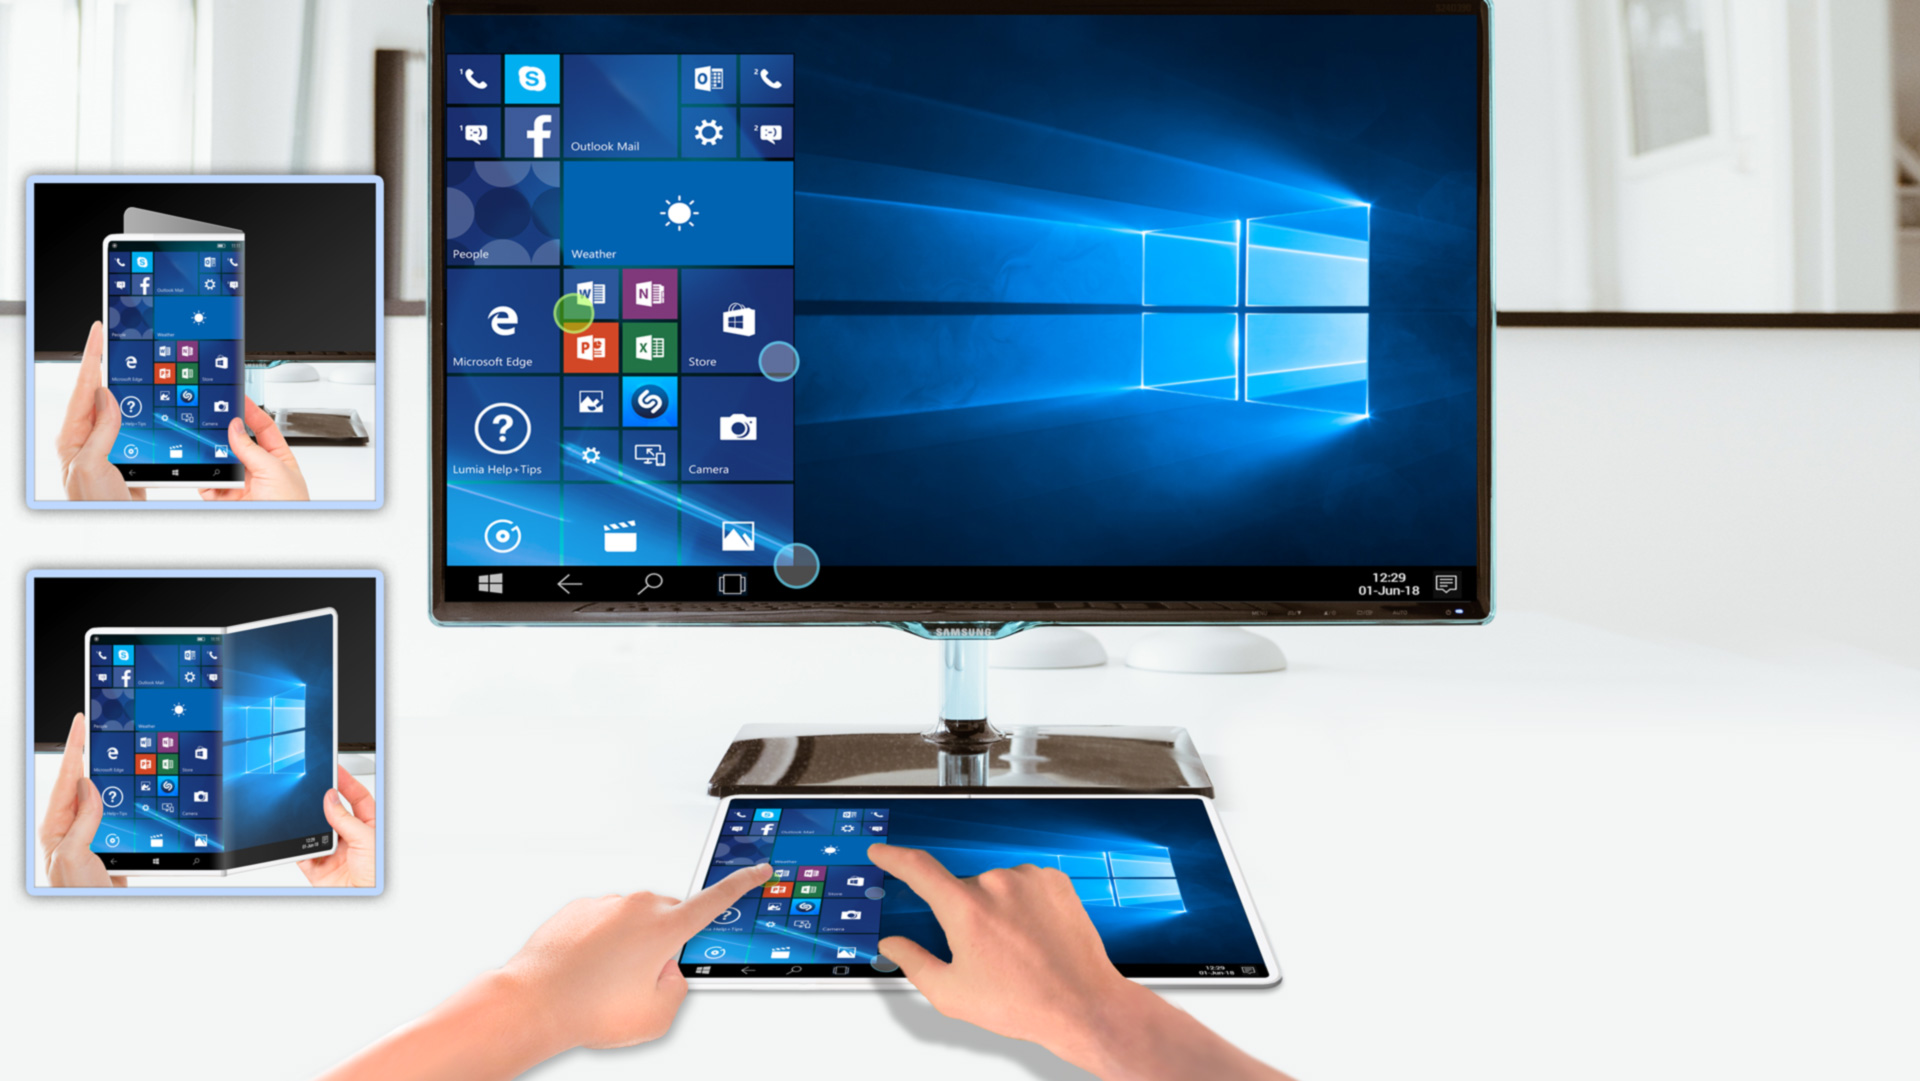 With HS tactile technology on Windows devices, you can mirror your device's screen and work from anywhere.